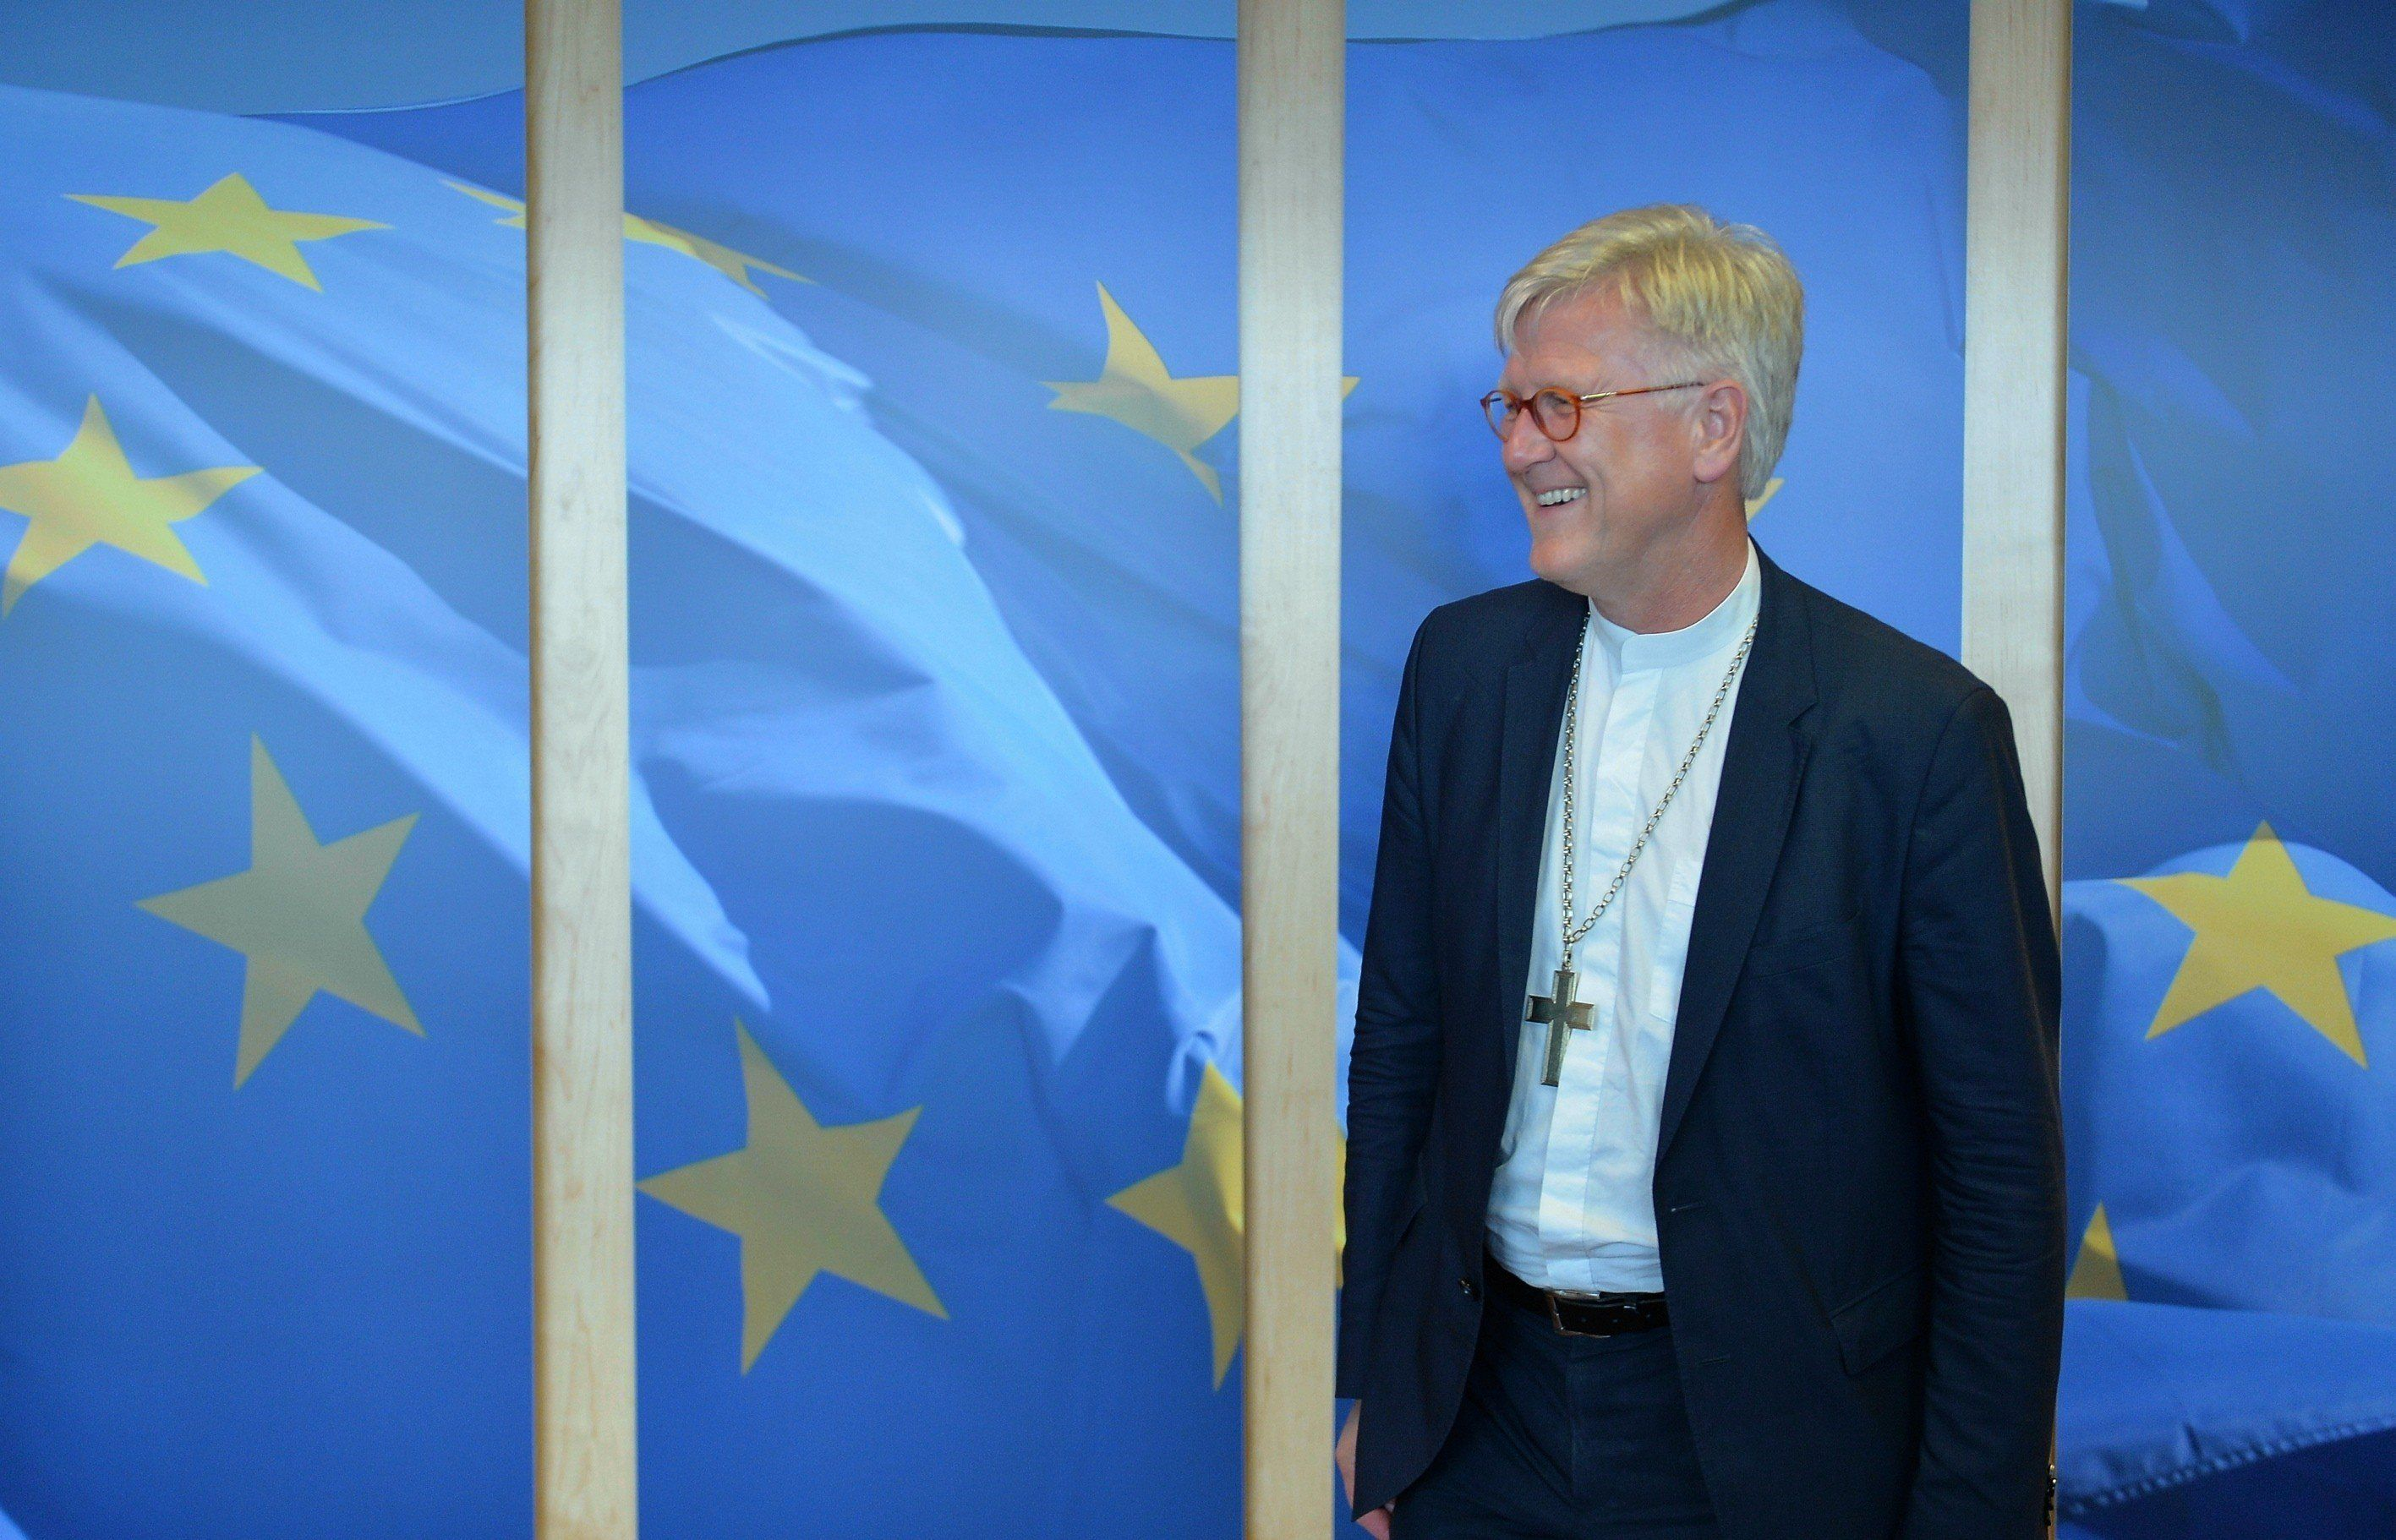 BRUSSELS, BELGIUM - SEPTEMBER 15:  Bishop Heinrich Bedford-Strohm, Chair of the Council of the Evangelical Church in Germany (EKD), is seen prior to a meeting at EU commission headquarters in Brussels, Belgium on September 15, 2015. (Photo by Dursun Aydemir/Anadolu Agency/Getty Images)